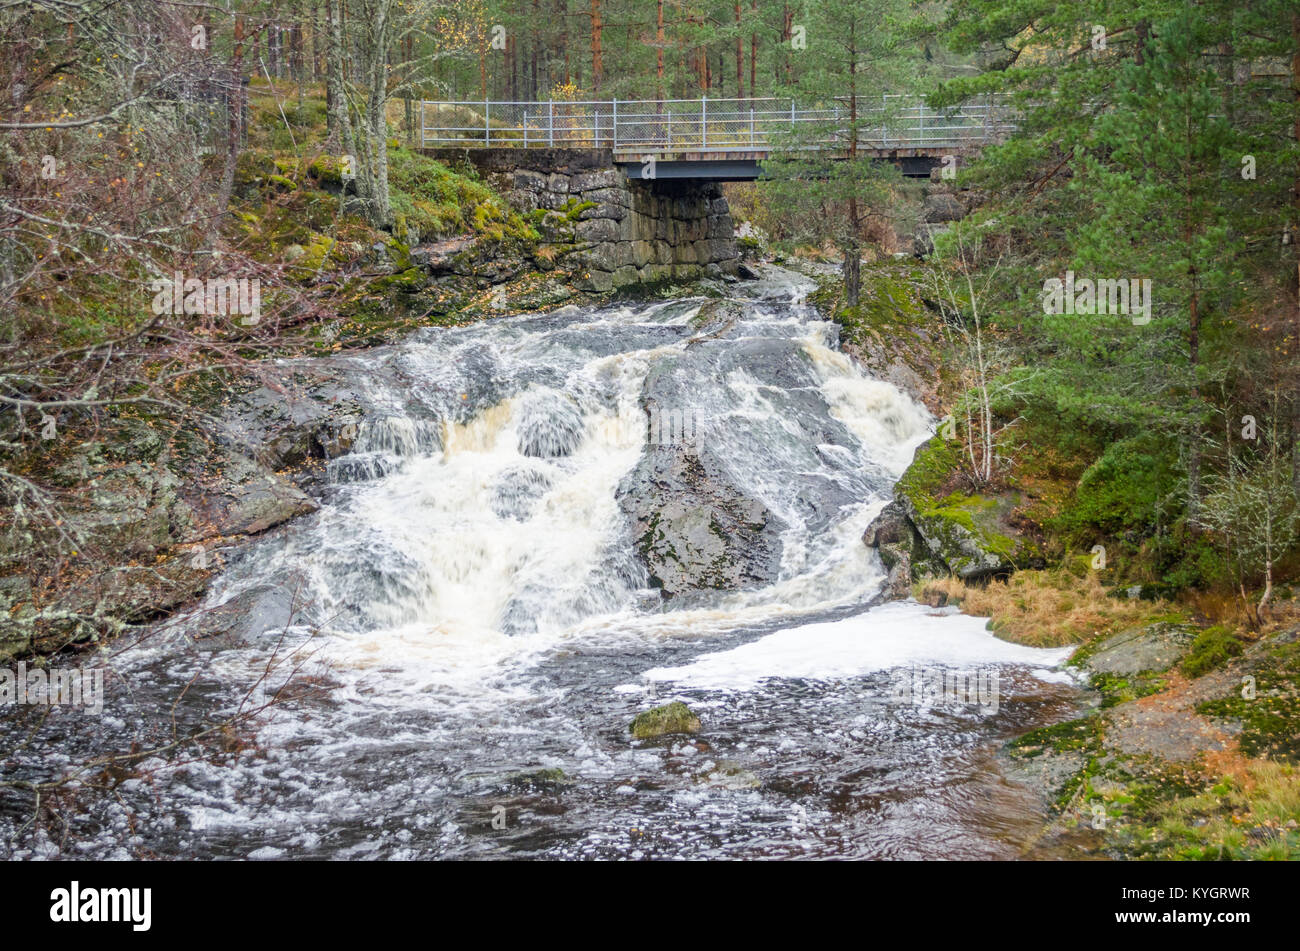 Evje Mineralsti- retired gemstone mine and local tourist attraction. Small waterfall close to road from Evje to - Stock Image